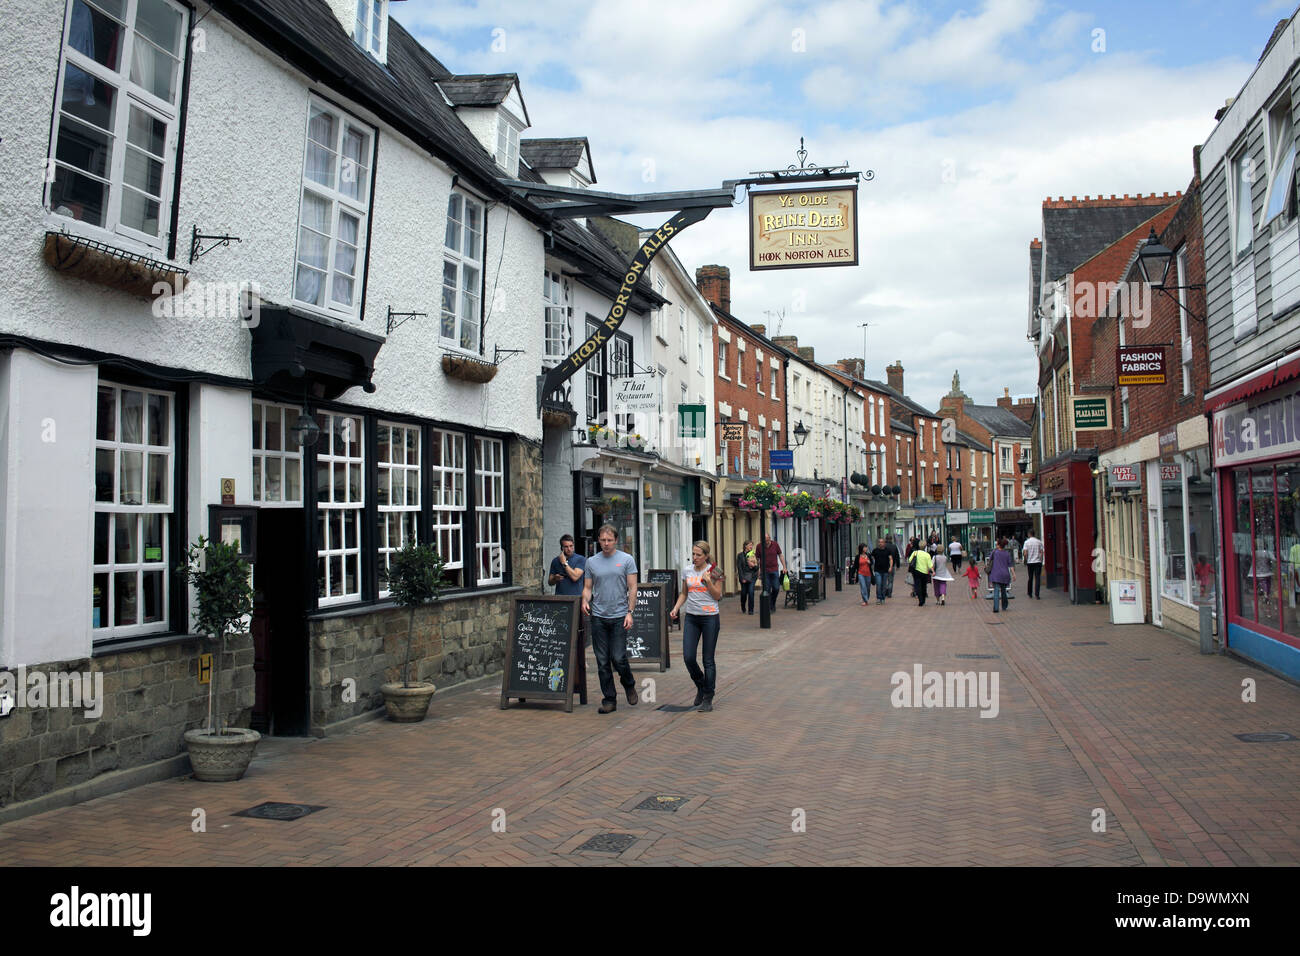 parsons street banbury town centre oxfordshire stock image